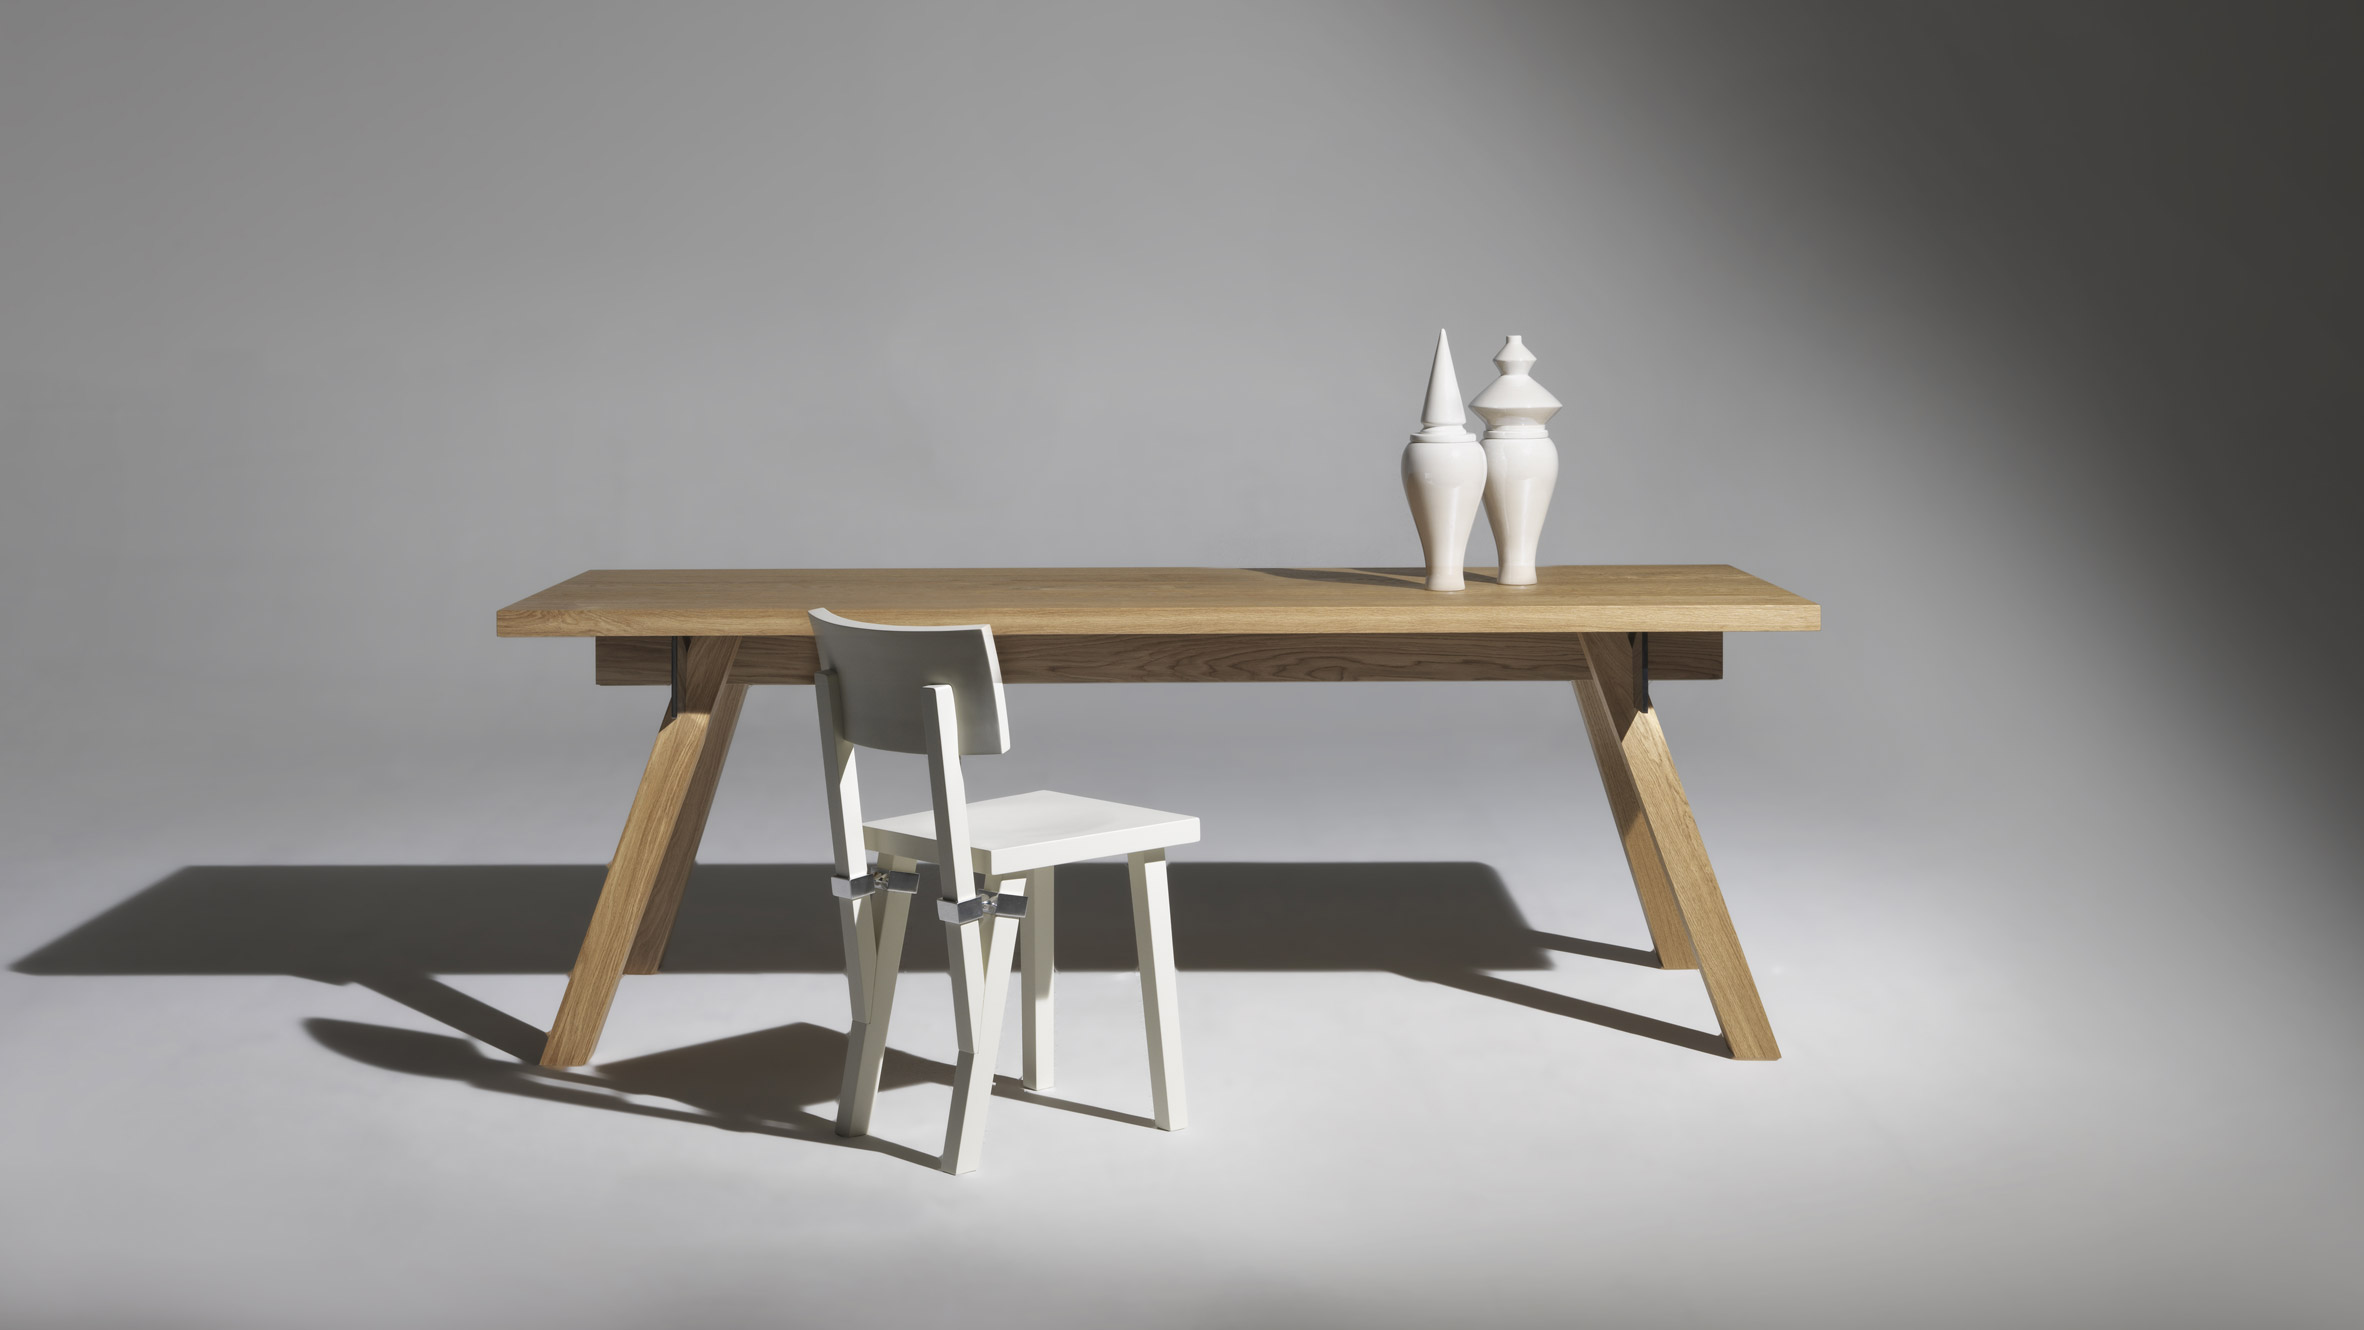 Torquemada table and chair by Philippe Starck at Driade